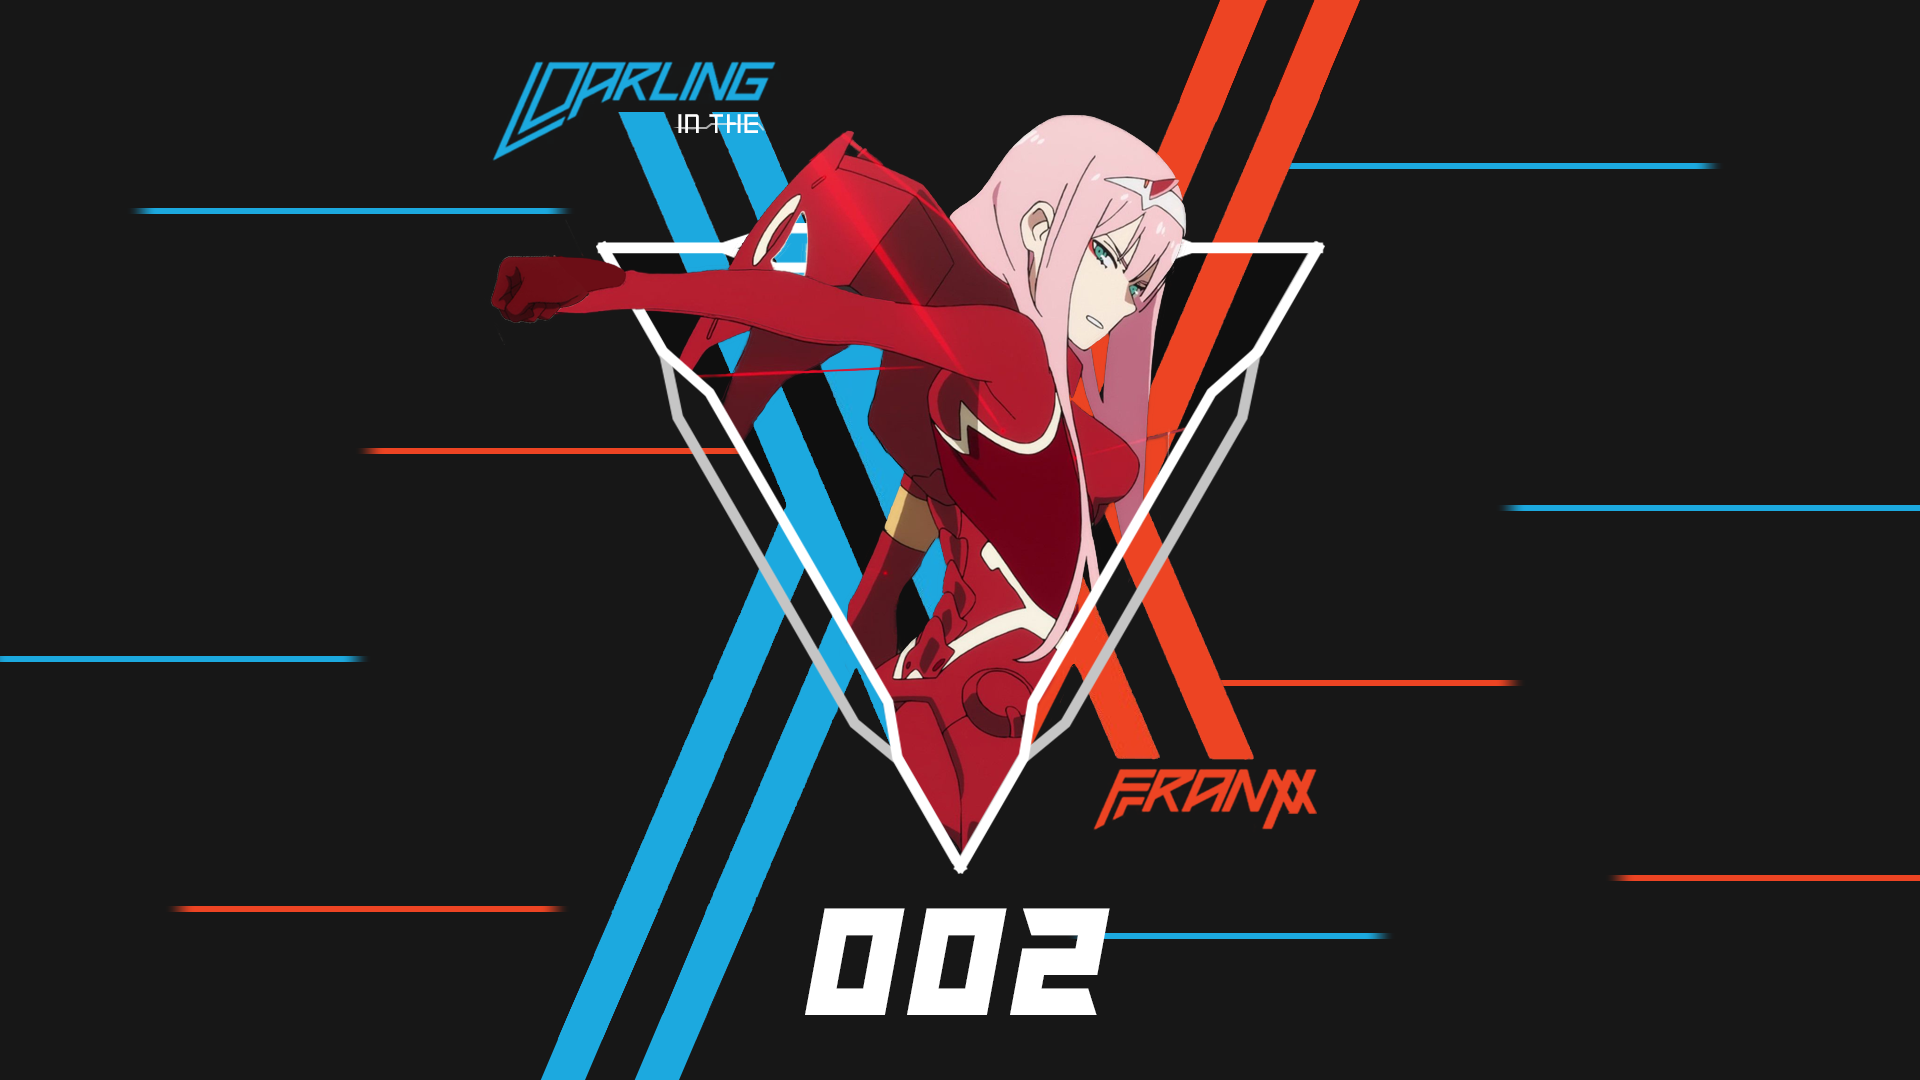 Darling In The Franxx Wallpaper 1920x1080 Posted By Zoey Simpson